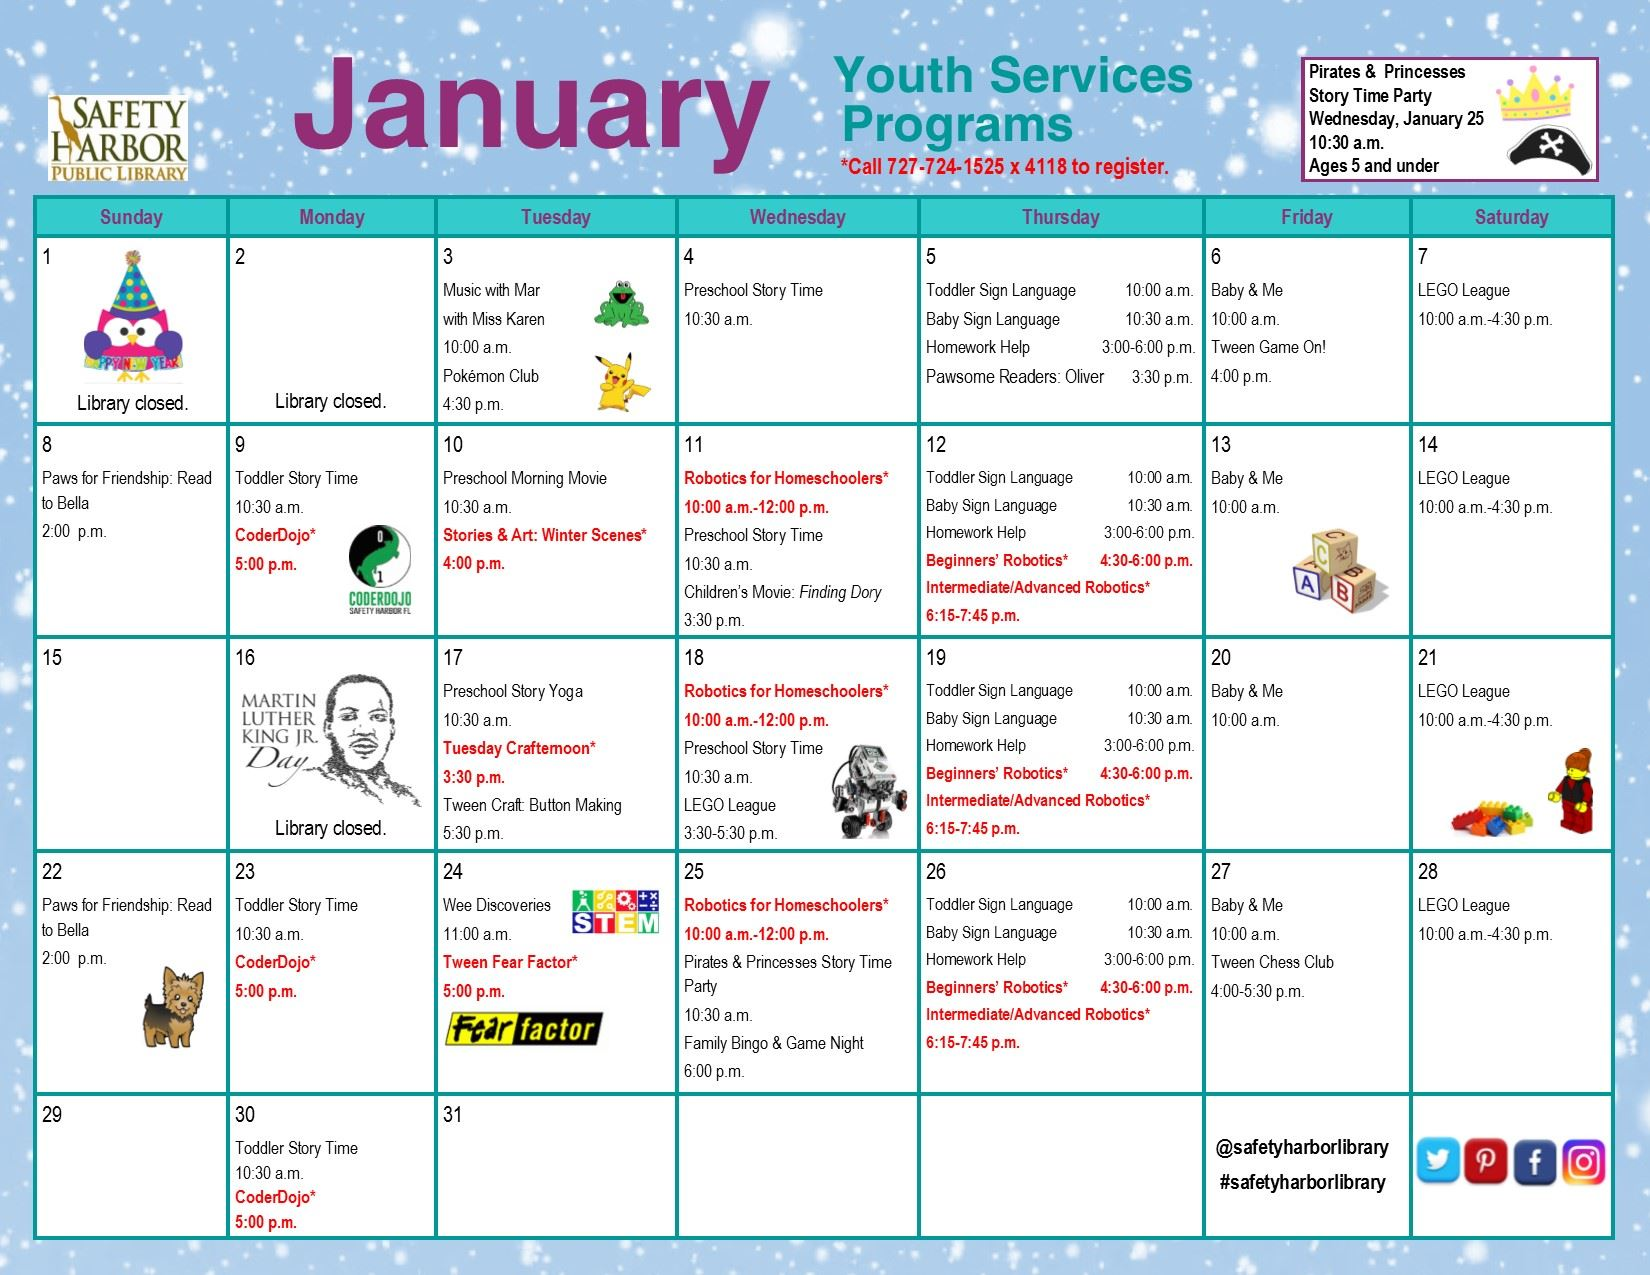 January 2017 Youth Services Calendar, Page 1